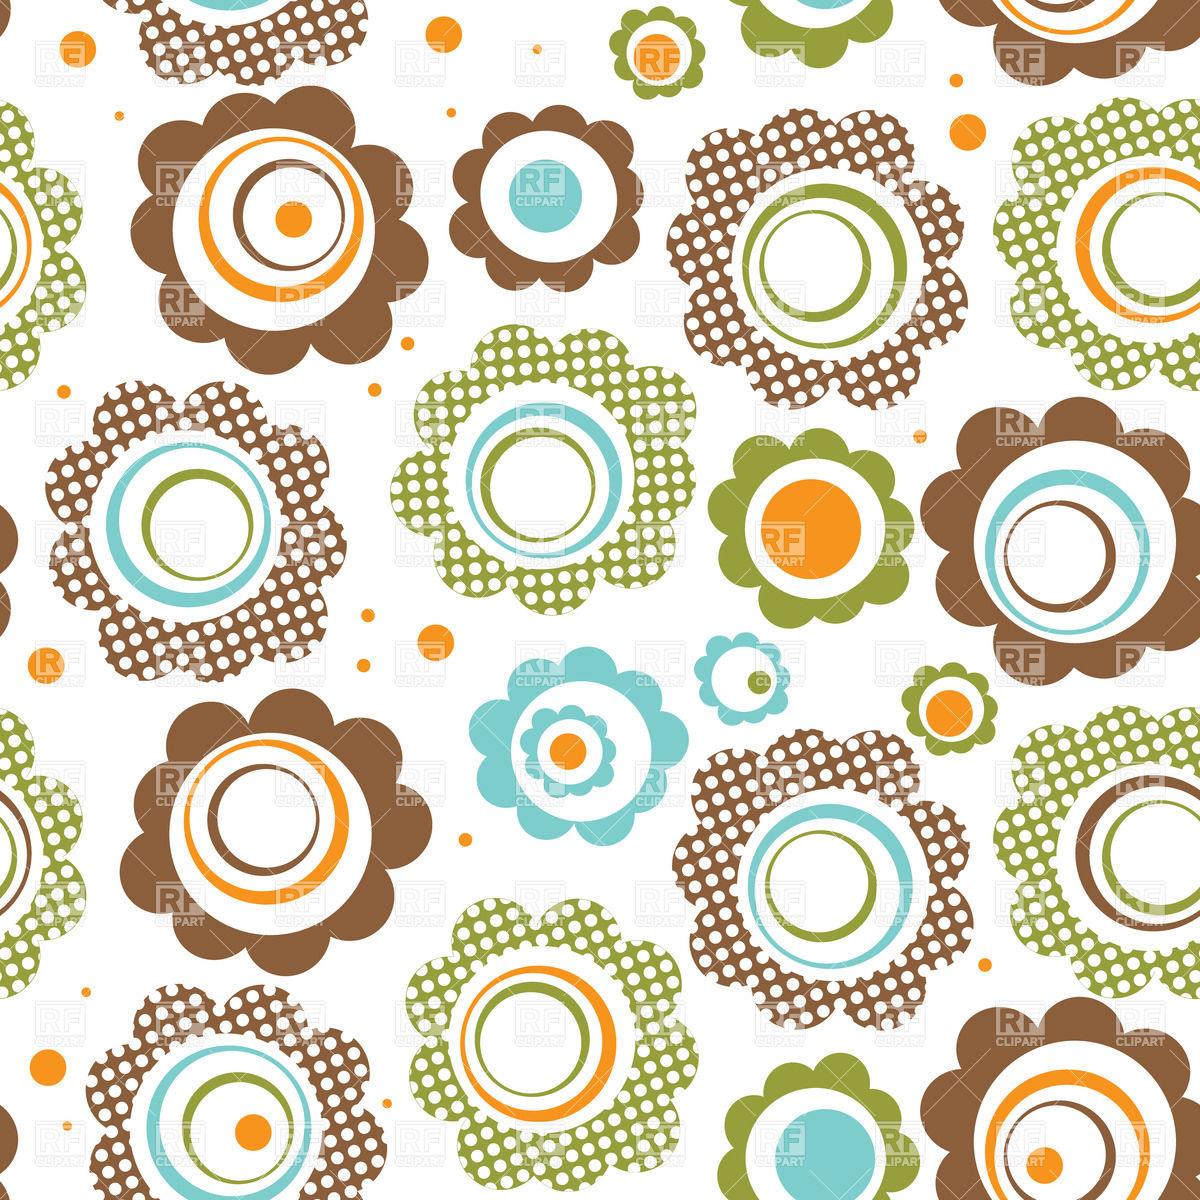 Flowers patterns vector clipart svg freeuse stock Free cartoon flower pattern background clipart - ClipartFest svg freeuse stock